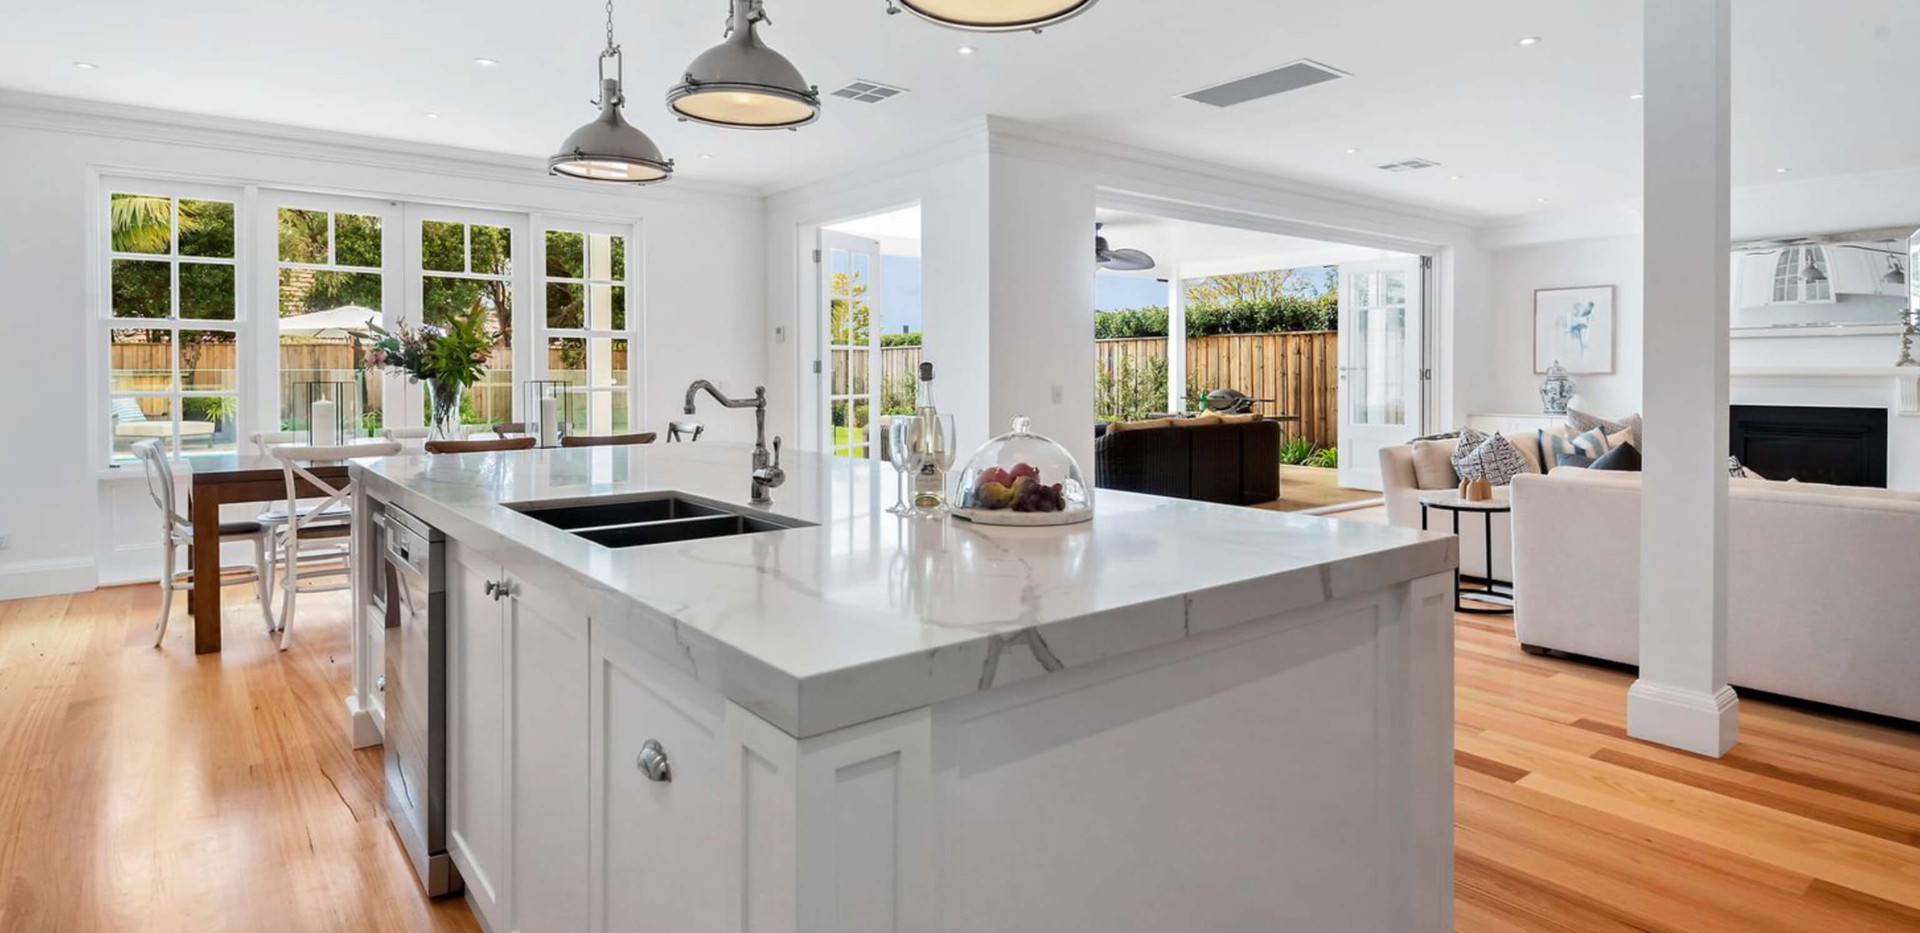 Seaforth Hamptons House - Residential kitchen design